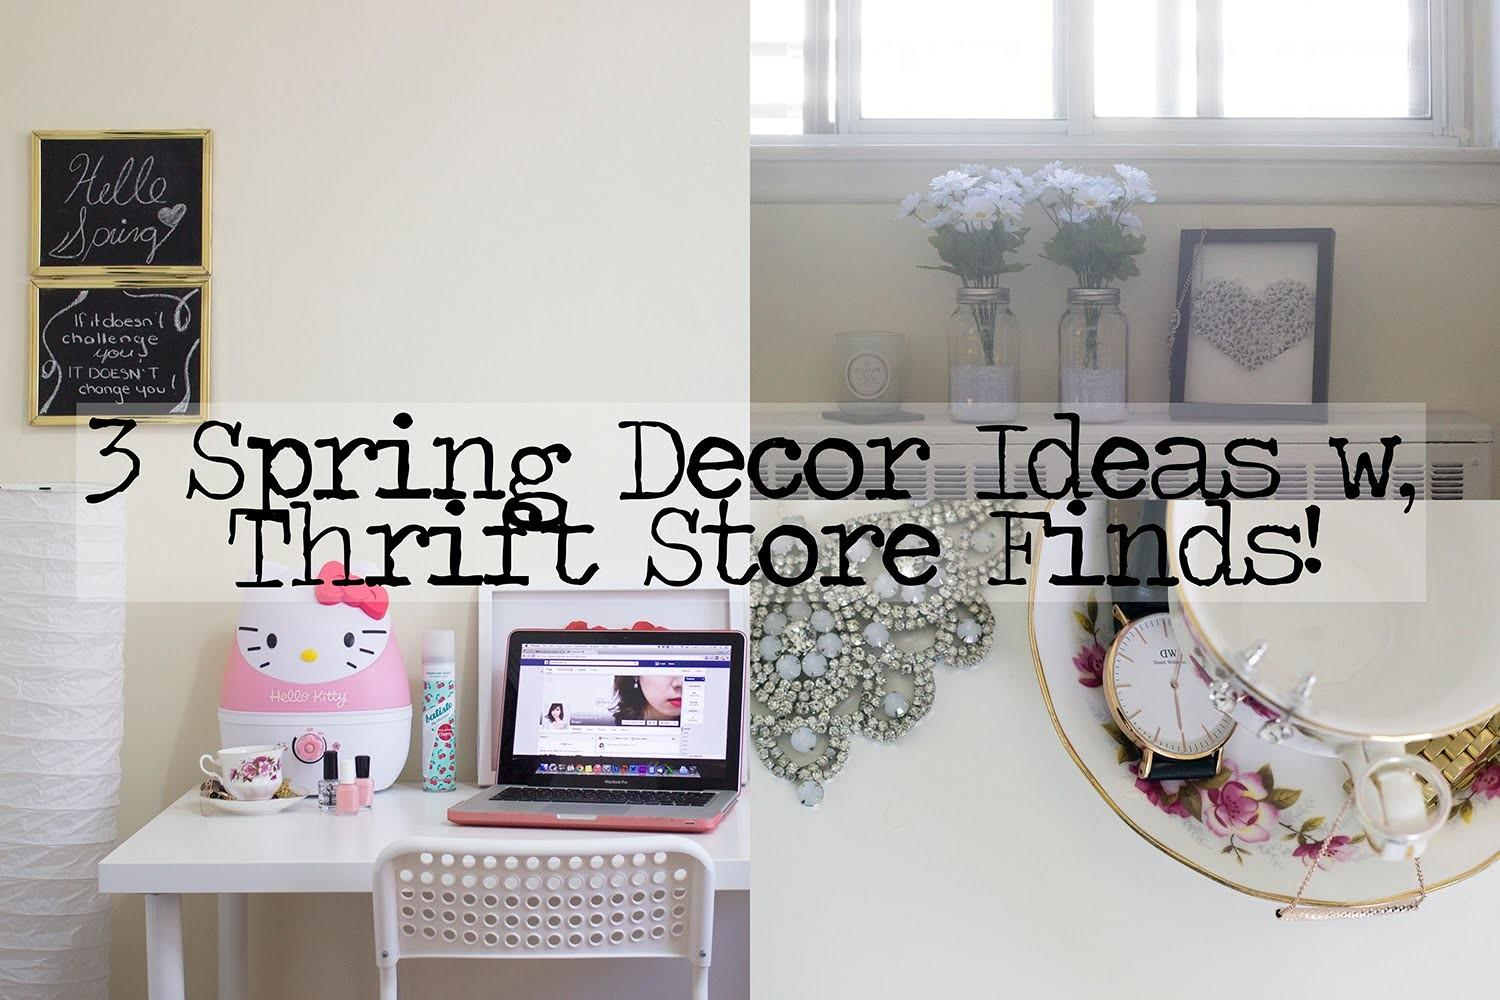 Spring Decor Ideas Thrift Store Finds